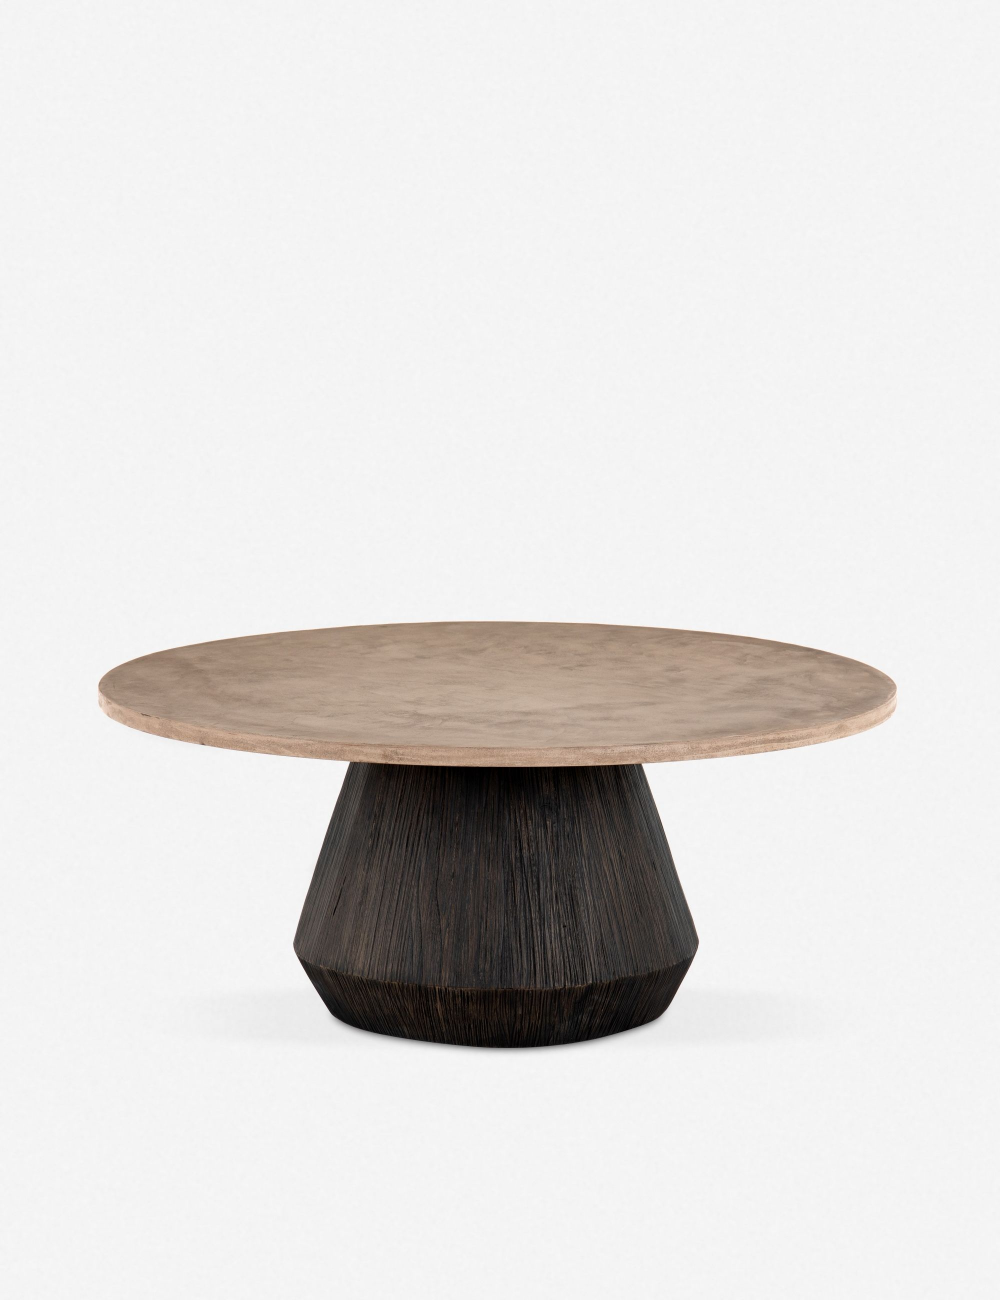 This Pedestal Living Room Coffee Table Features A Two Toned Design With A Carved Sungkai Wood Bas Round Wood Coffee Table Round Coffee Table Coffee Table Wood [ 1300 x 1000 Pixel ]